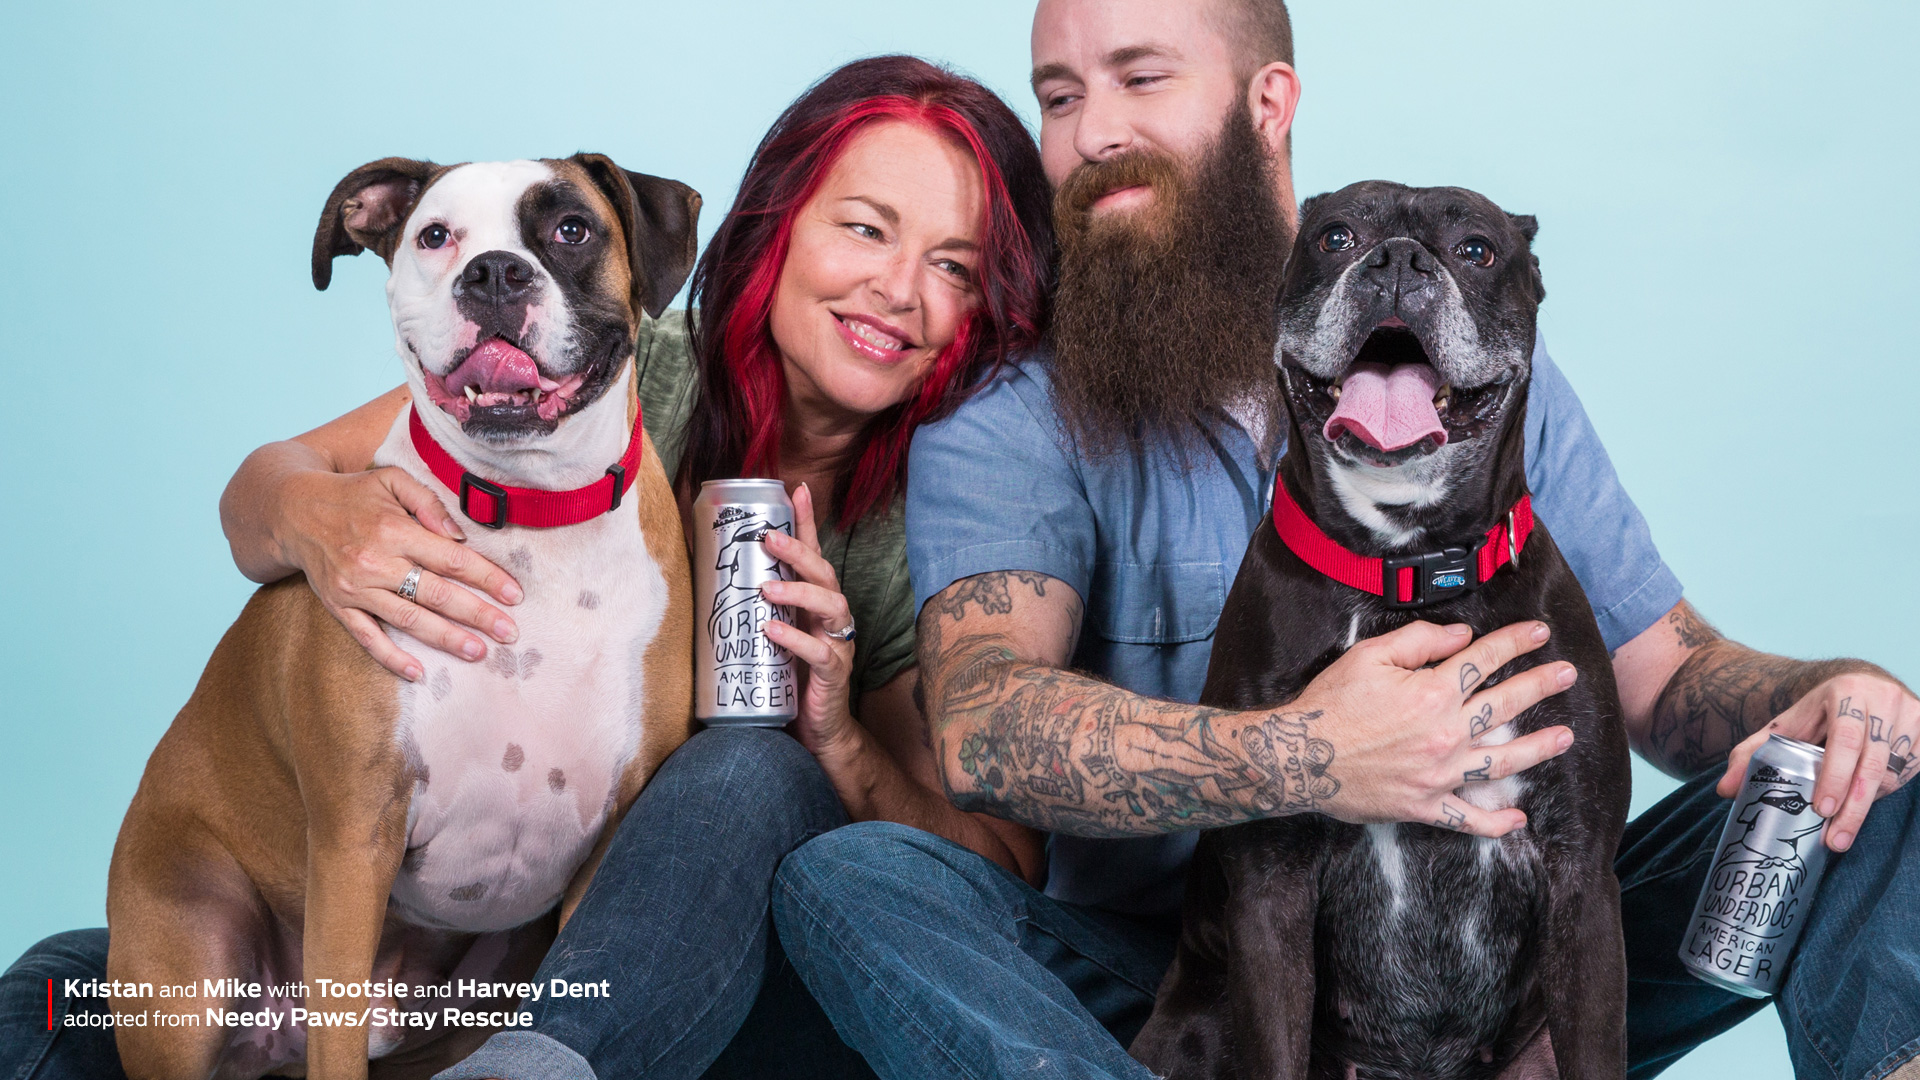 Consider A Shelter Pet campaign